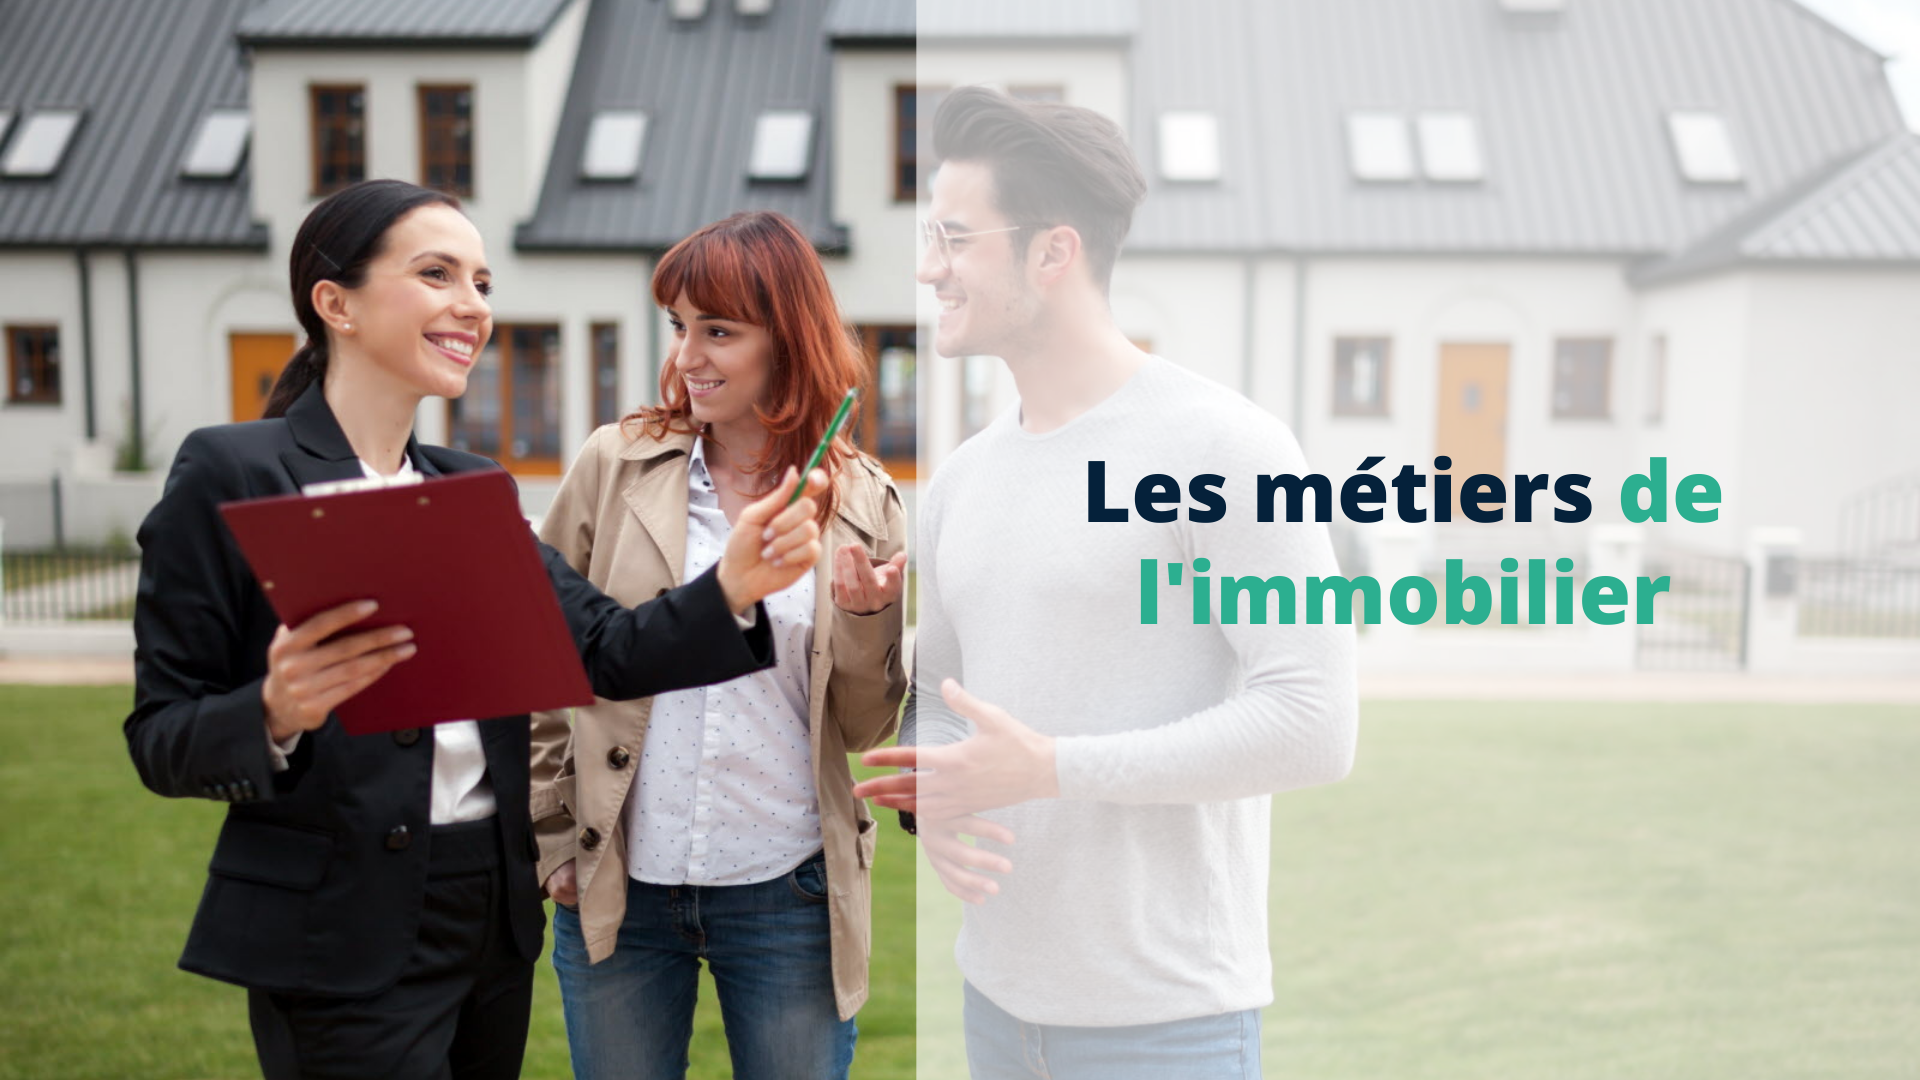 Les métiers de l'immobilier - Start Learning